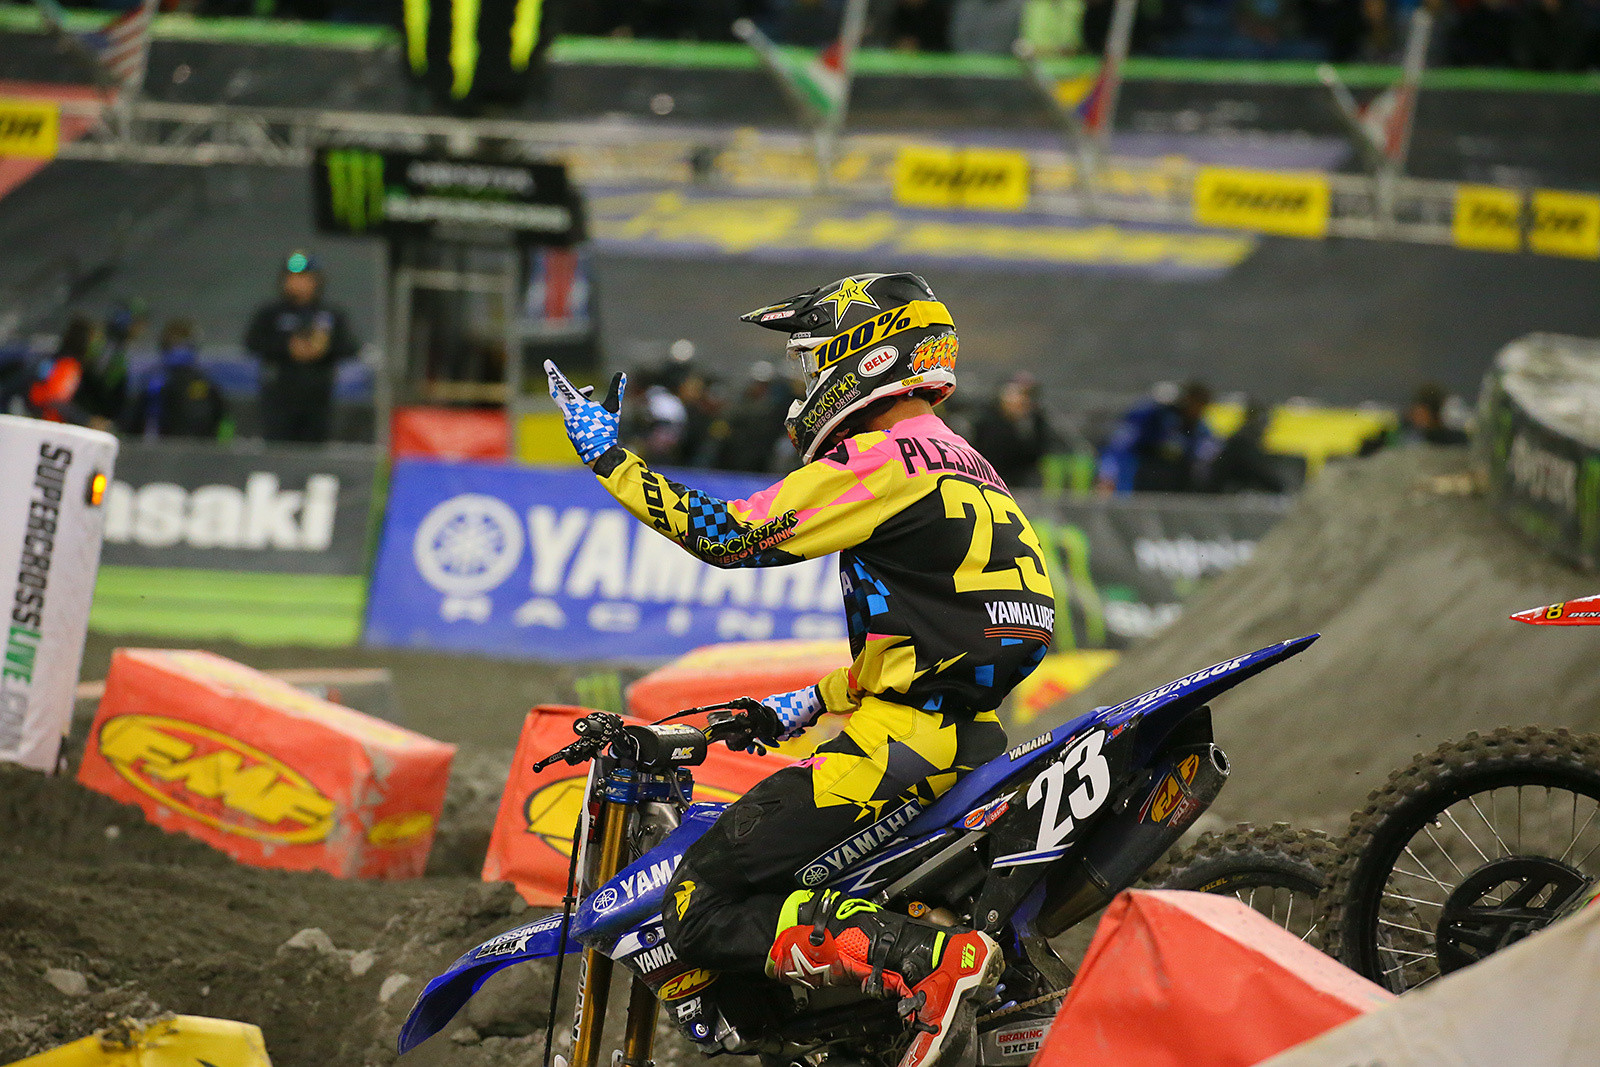 Aaron Plessinger was not too pleased with a red flag while he was running out front in the 250 main.